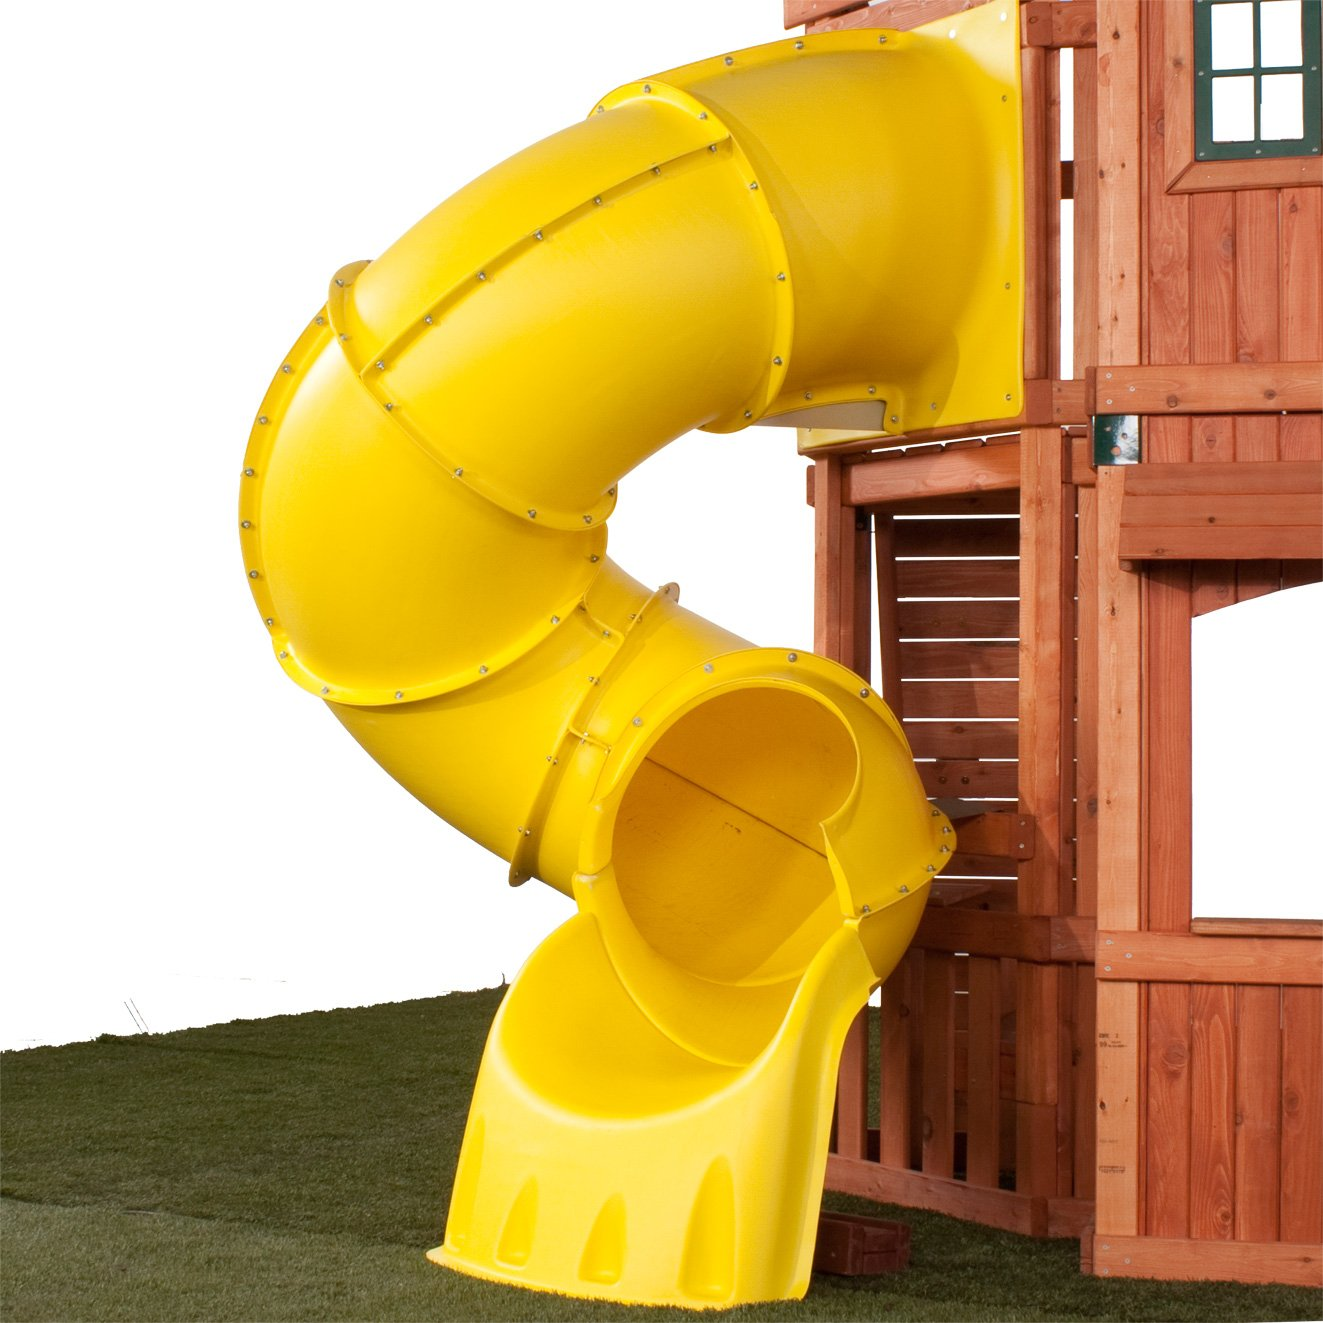 5 Ft Turbo Tube Slide, Yellow by Swing-N-Slide